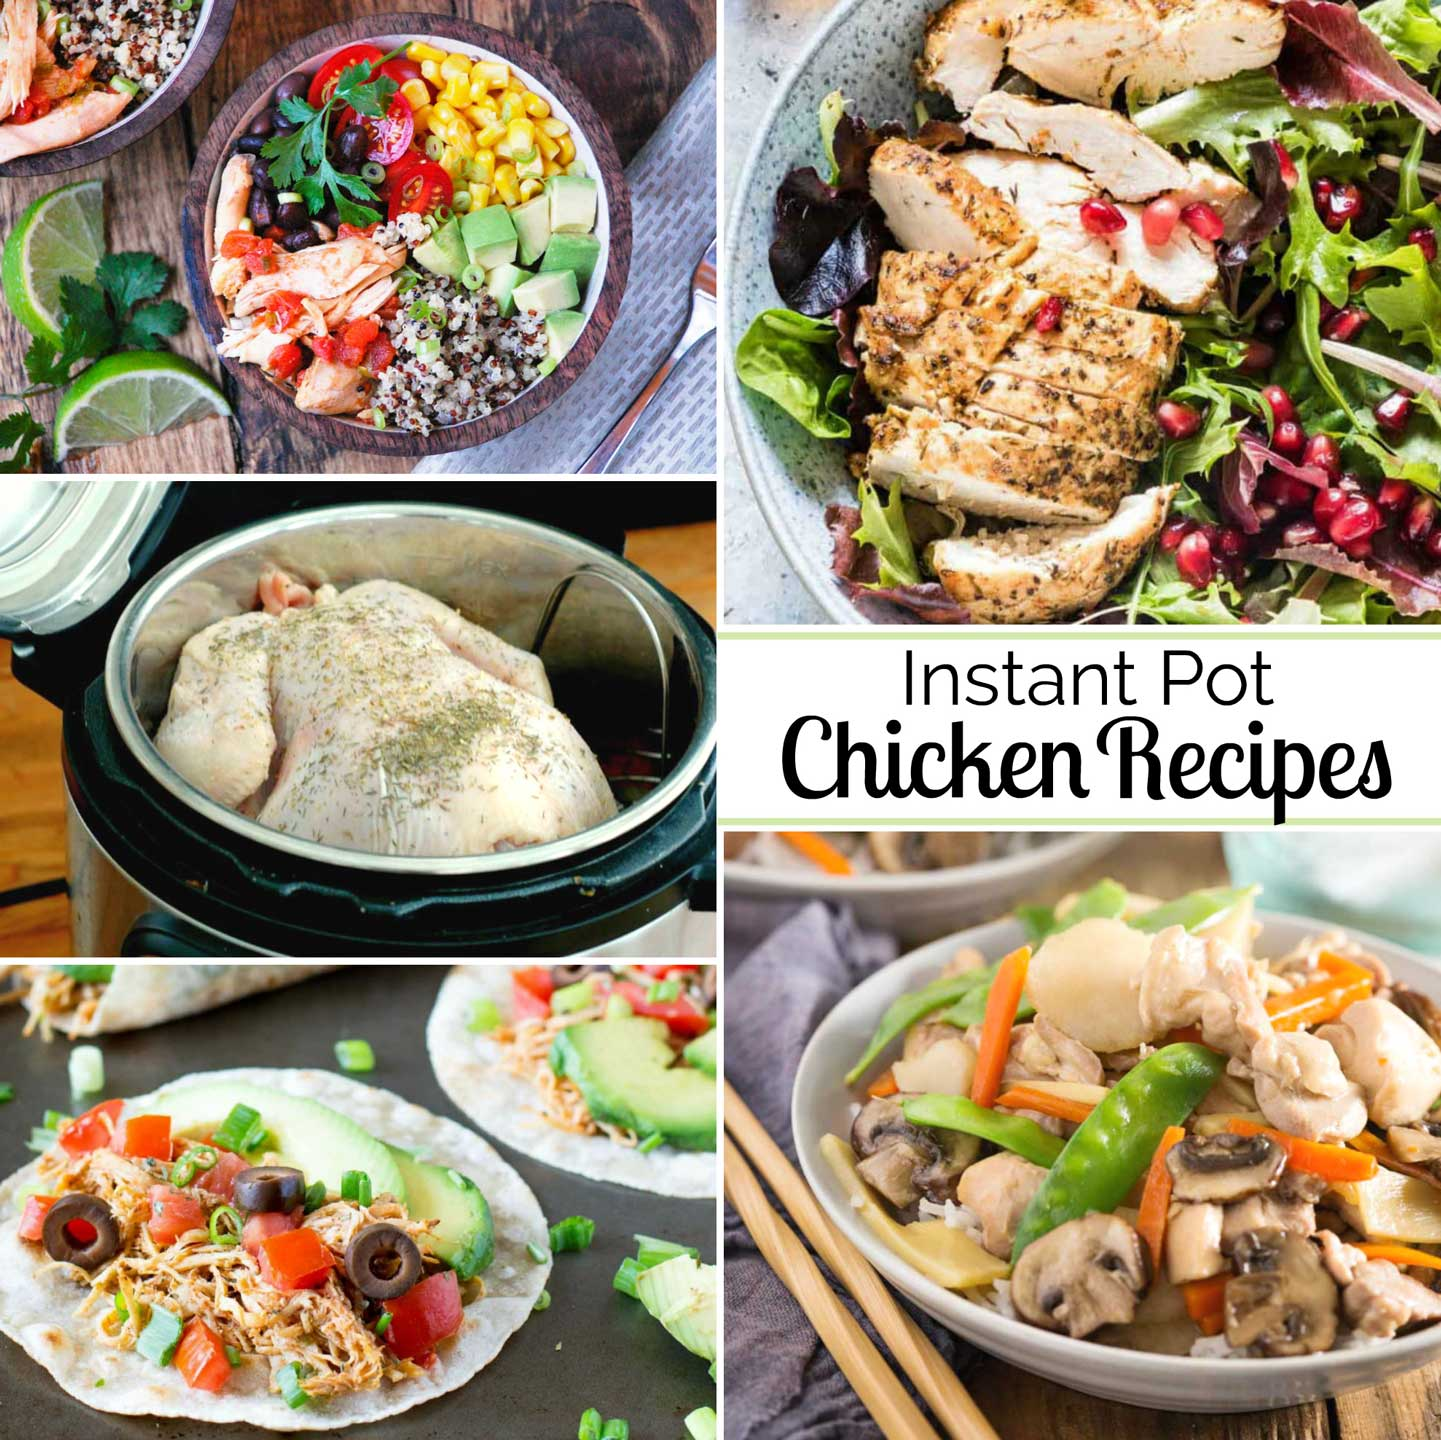 This round-up list of 20 pressure cooker chicken recipes features recipes for chicken breasts, chicken thighs …. even whole chickens!